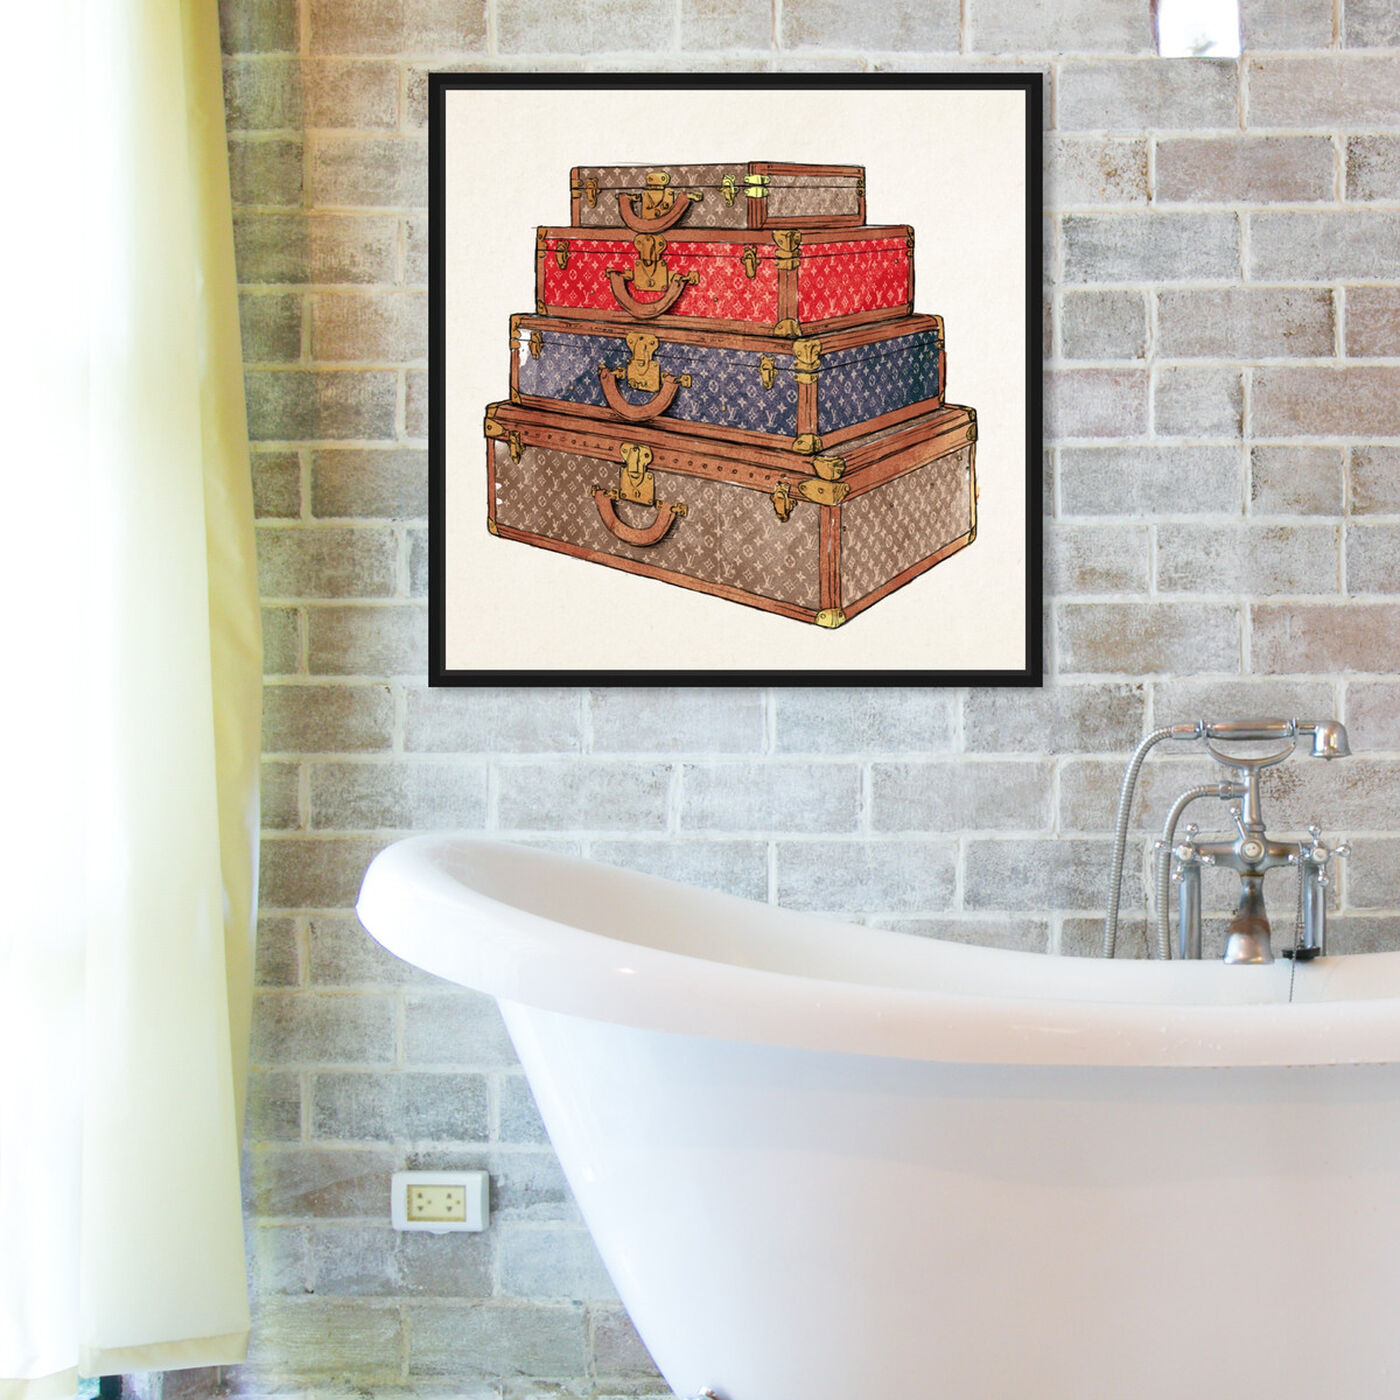 Hanging view of The Royal Luggage featuring fashion and glam and travel essentials art.